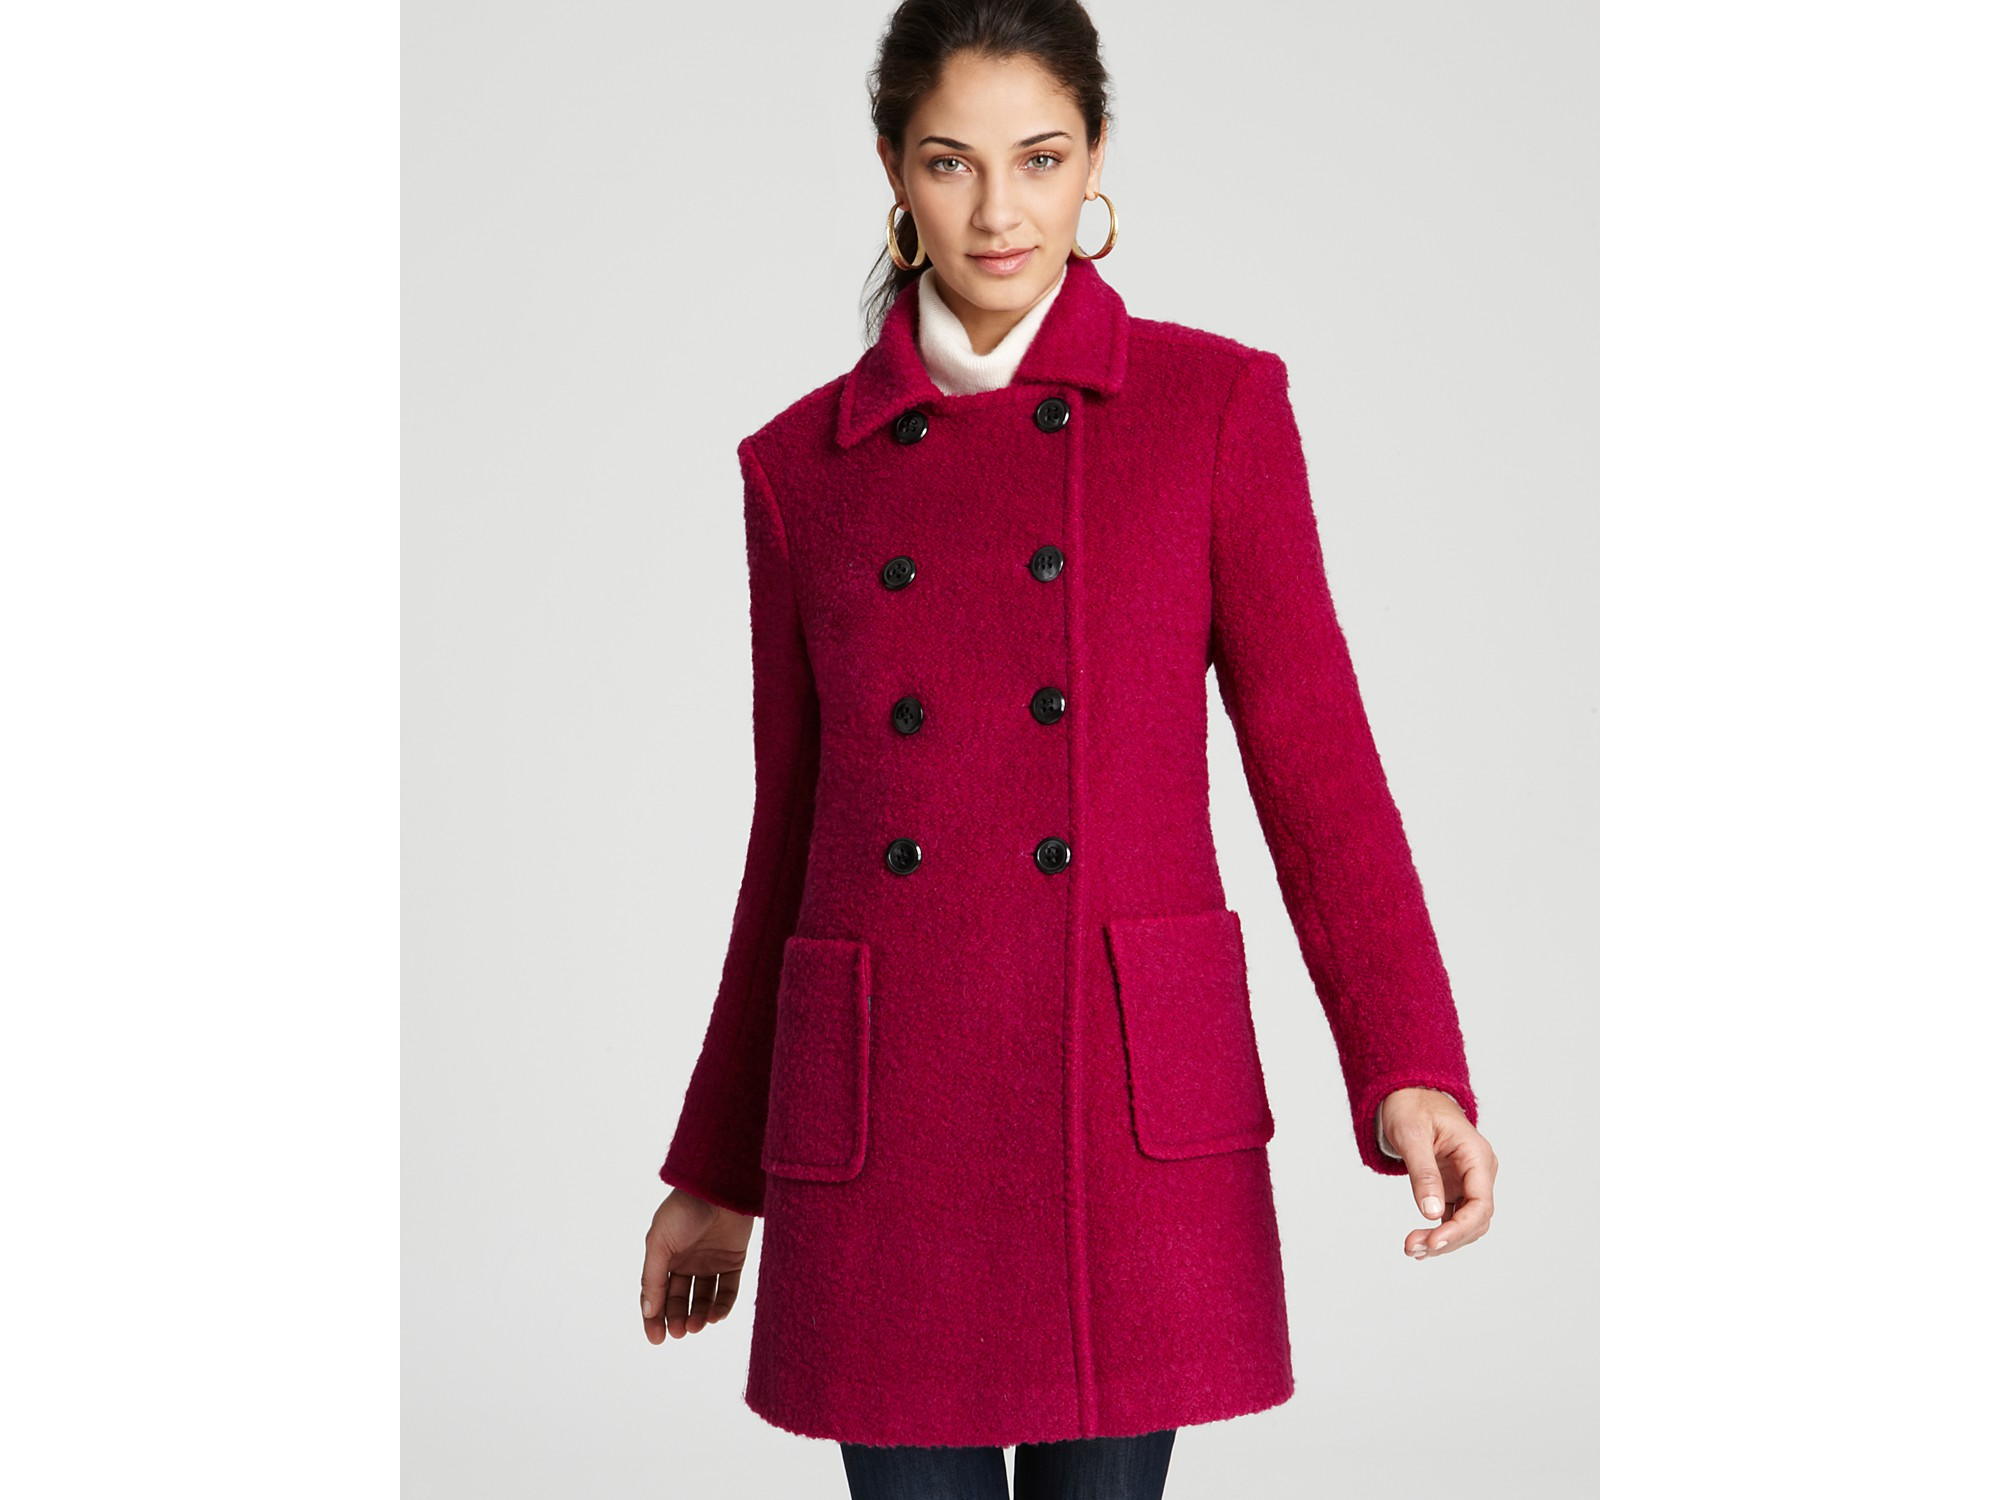 Dkny Joanna Double Breasted Patch Pocket Coat in Pink | Lyst